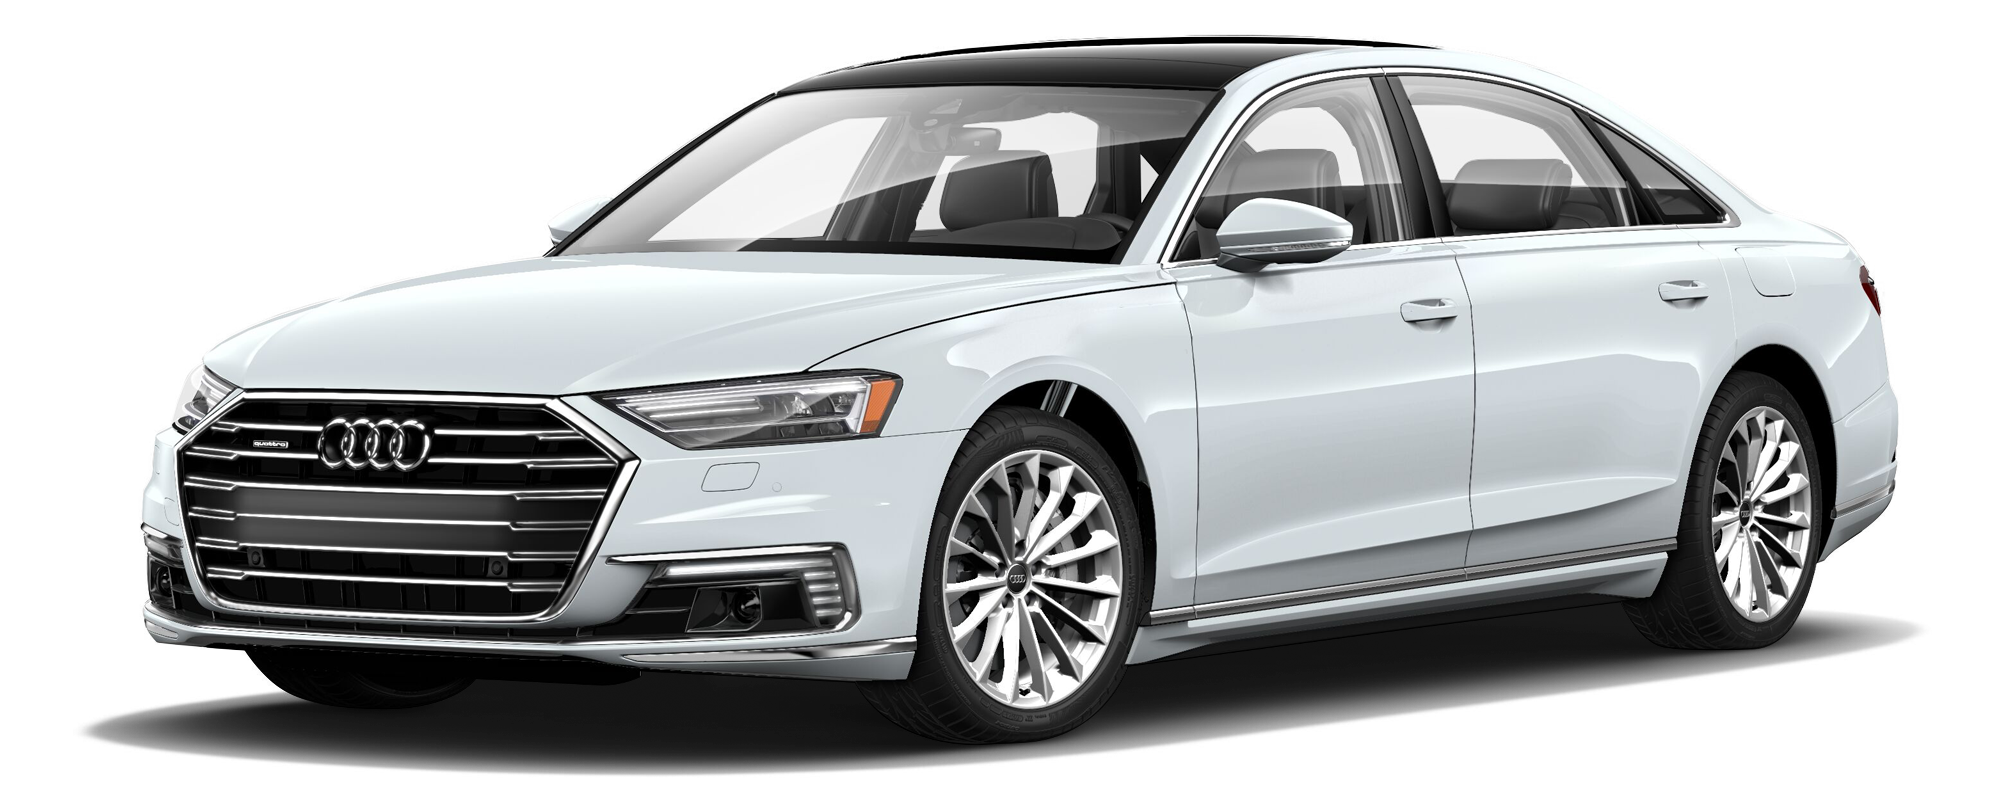 Sewell Collision Center >> 2019 Audi A8 Incentives, Specials & Offers in McKinney TX